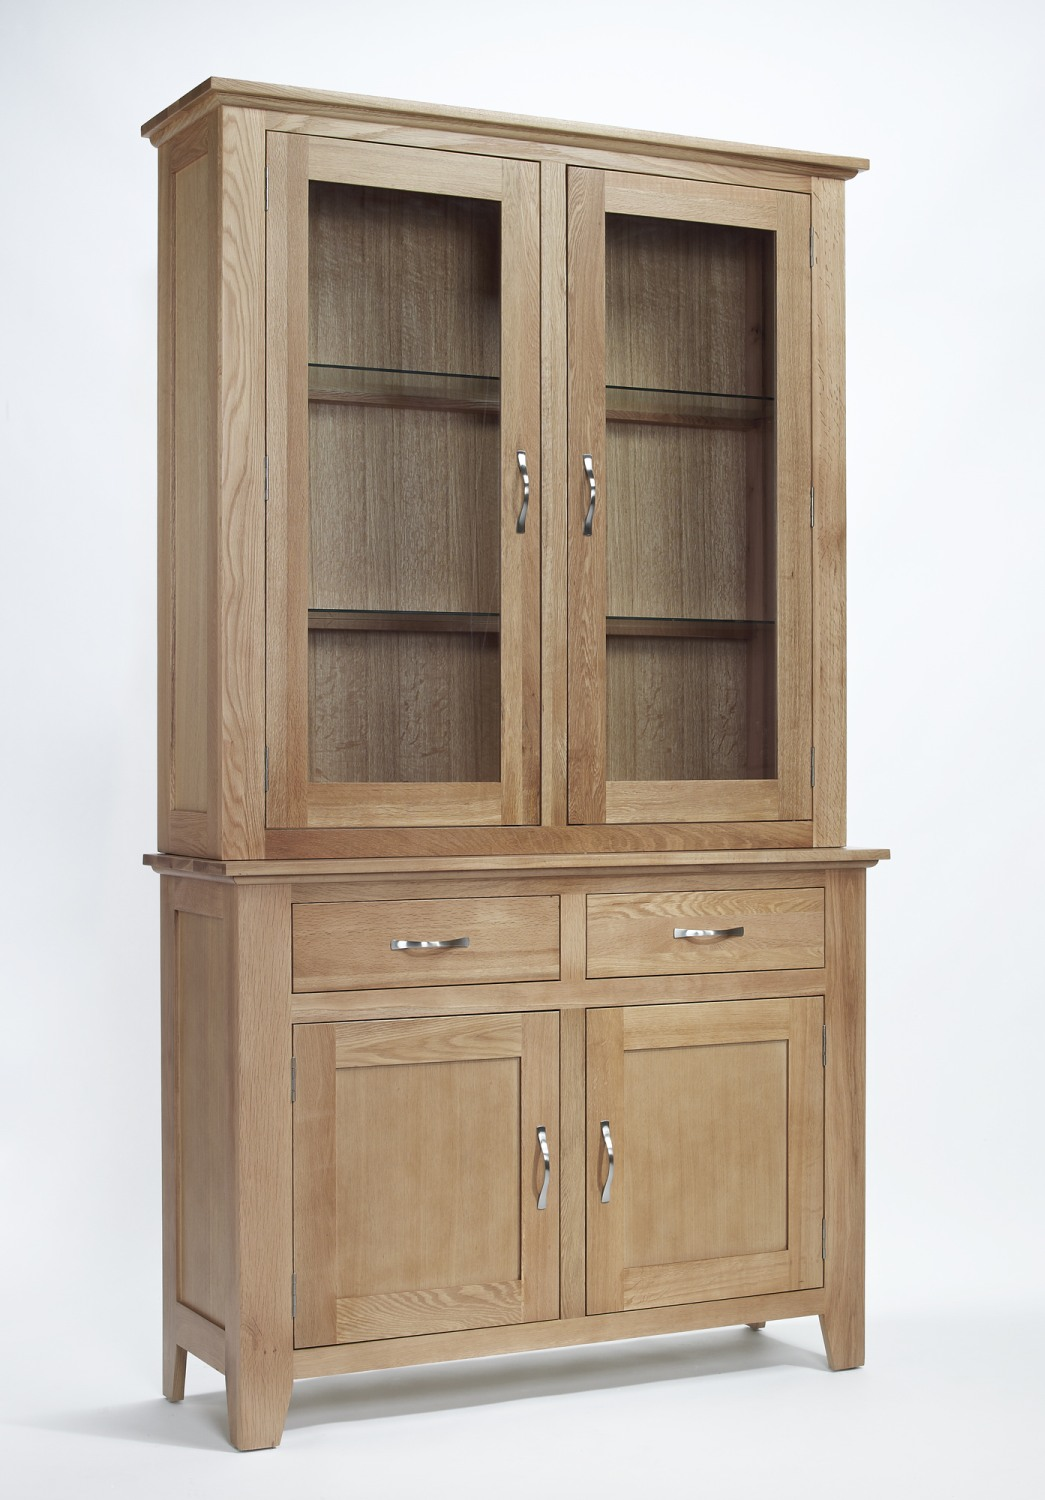 compton solid oak furniture dining room dresser display cabinet ebay